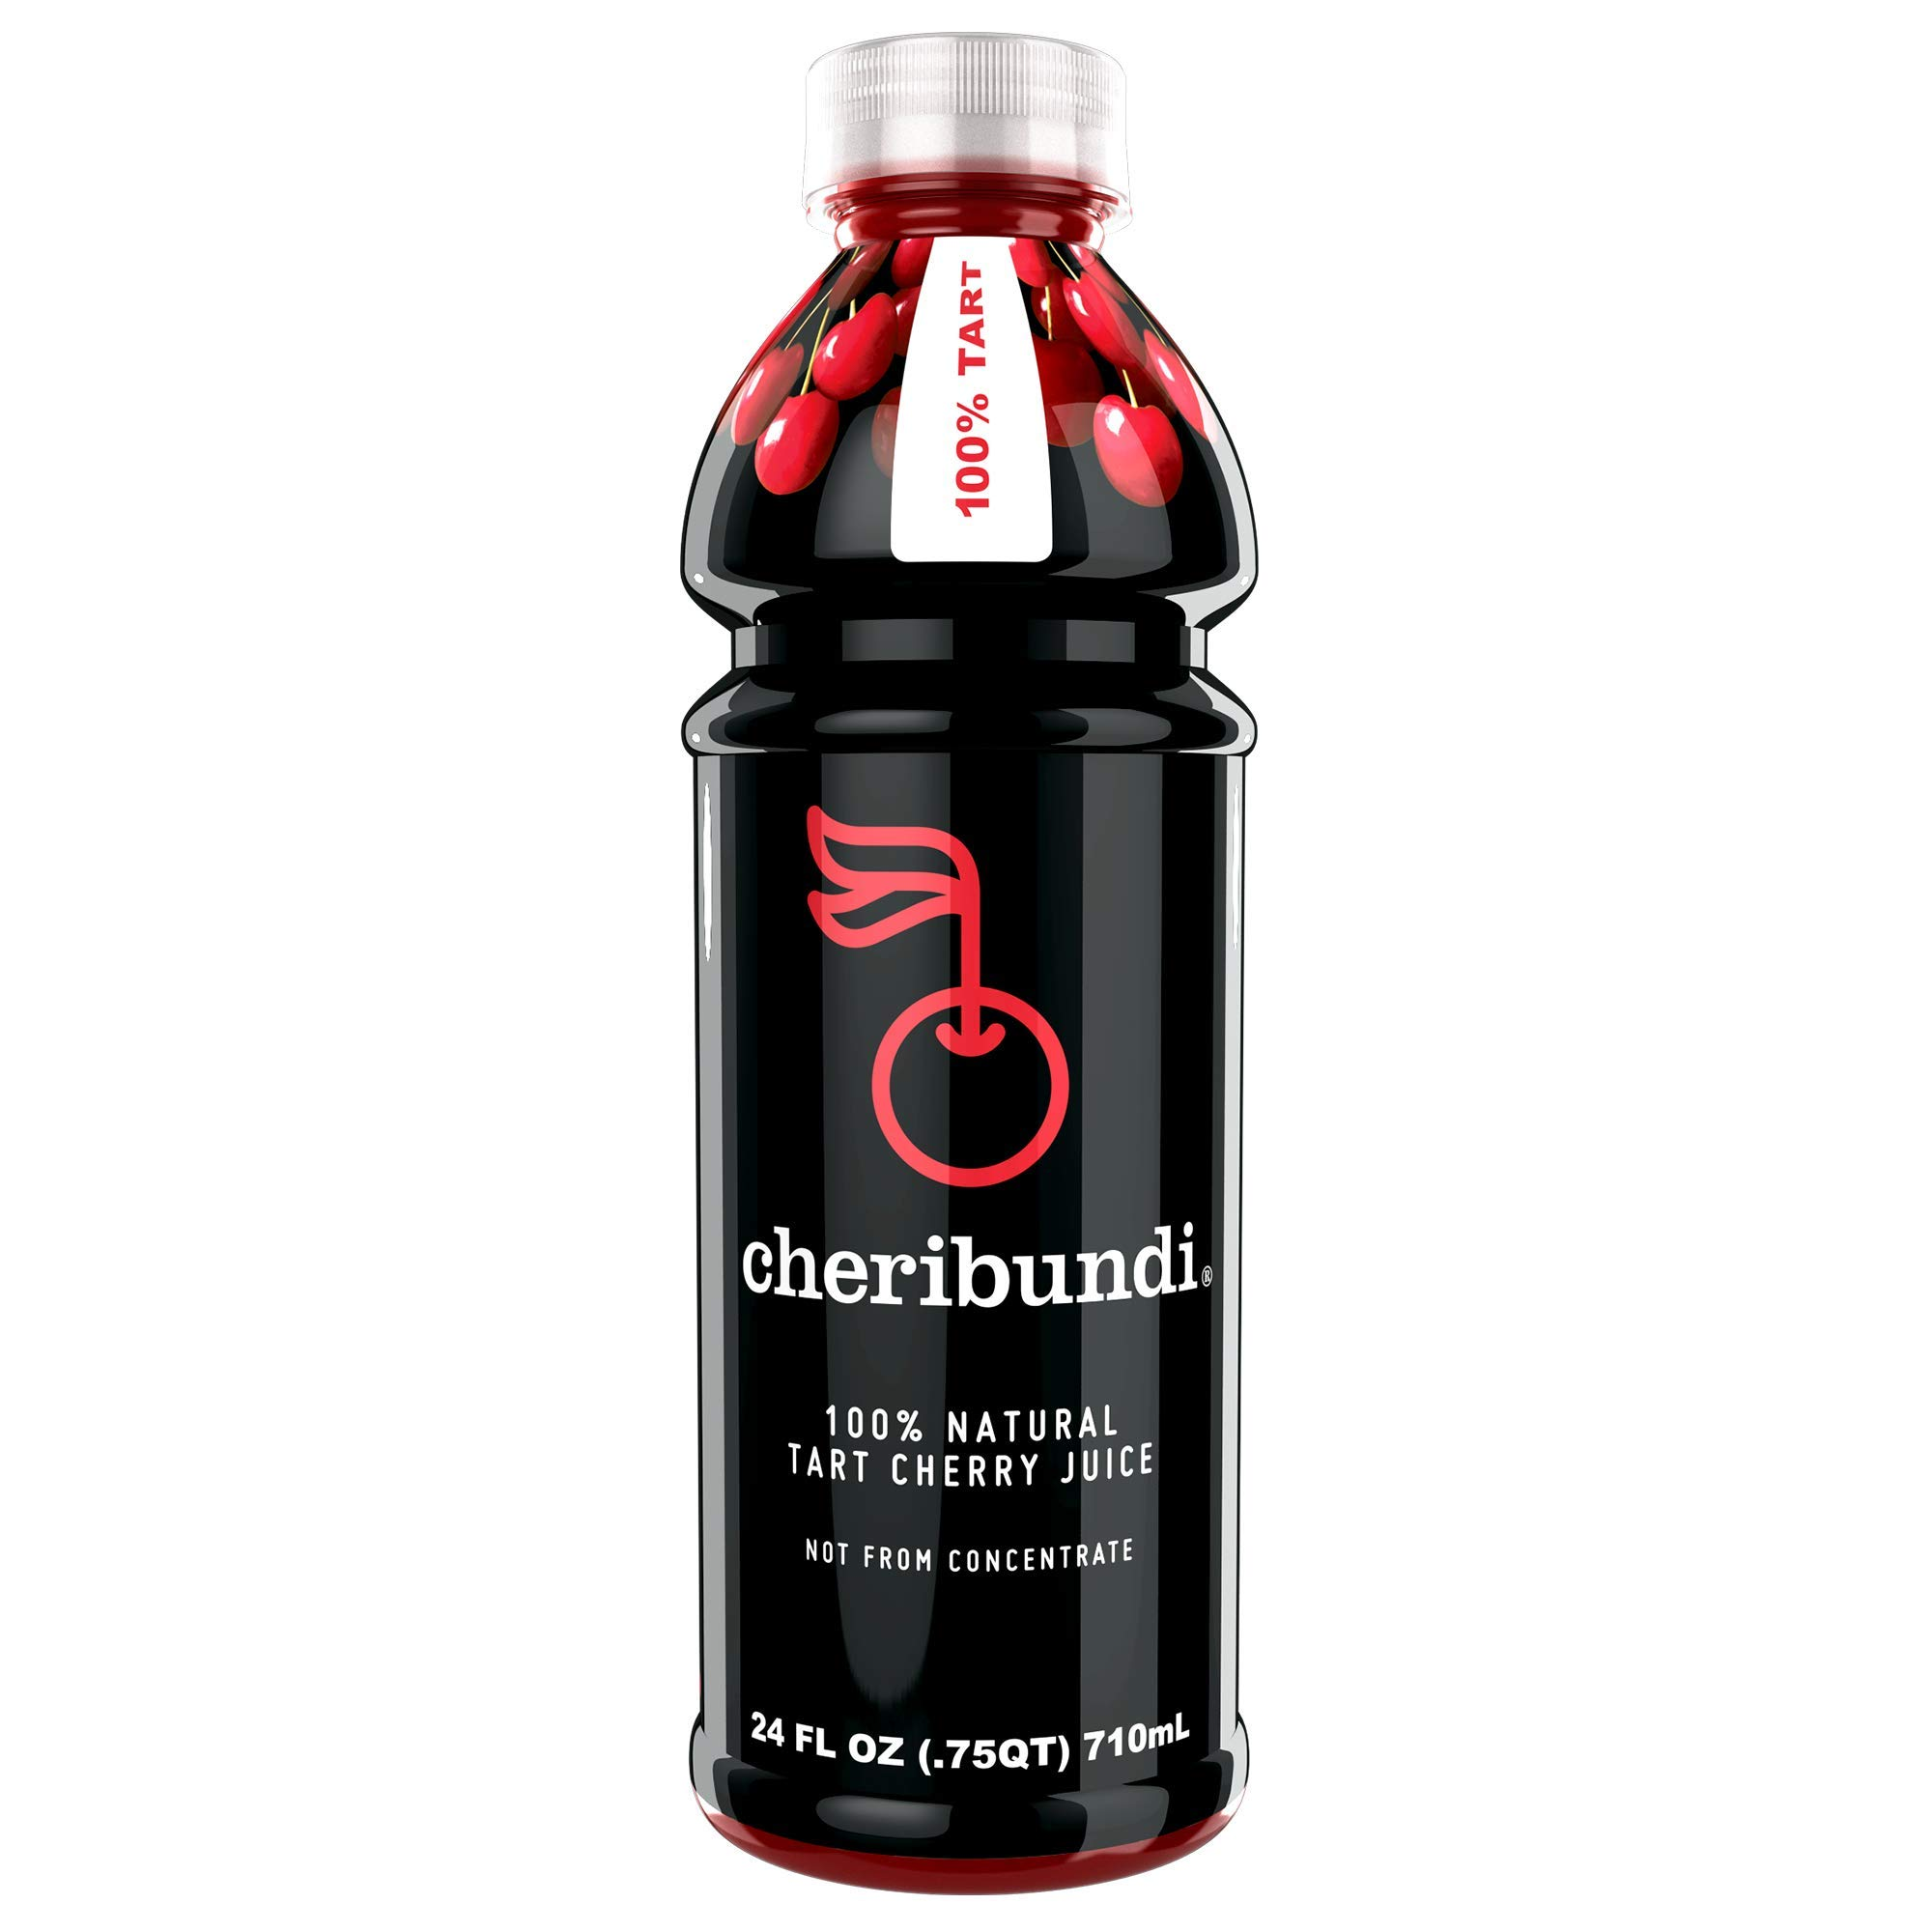 Cheribundi 100% Tart Cherry Juice - 60 Tart Cherries and 100 Calories Per 24oz. Serving, One Ingredient, All of the Benefits, Reduce Soreness, Recover Faster, Boost Immunity and Improve Sleep, 8 Pack